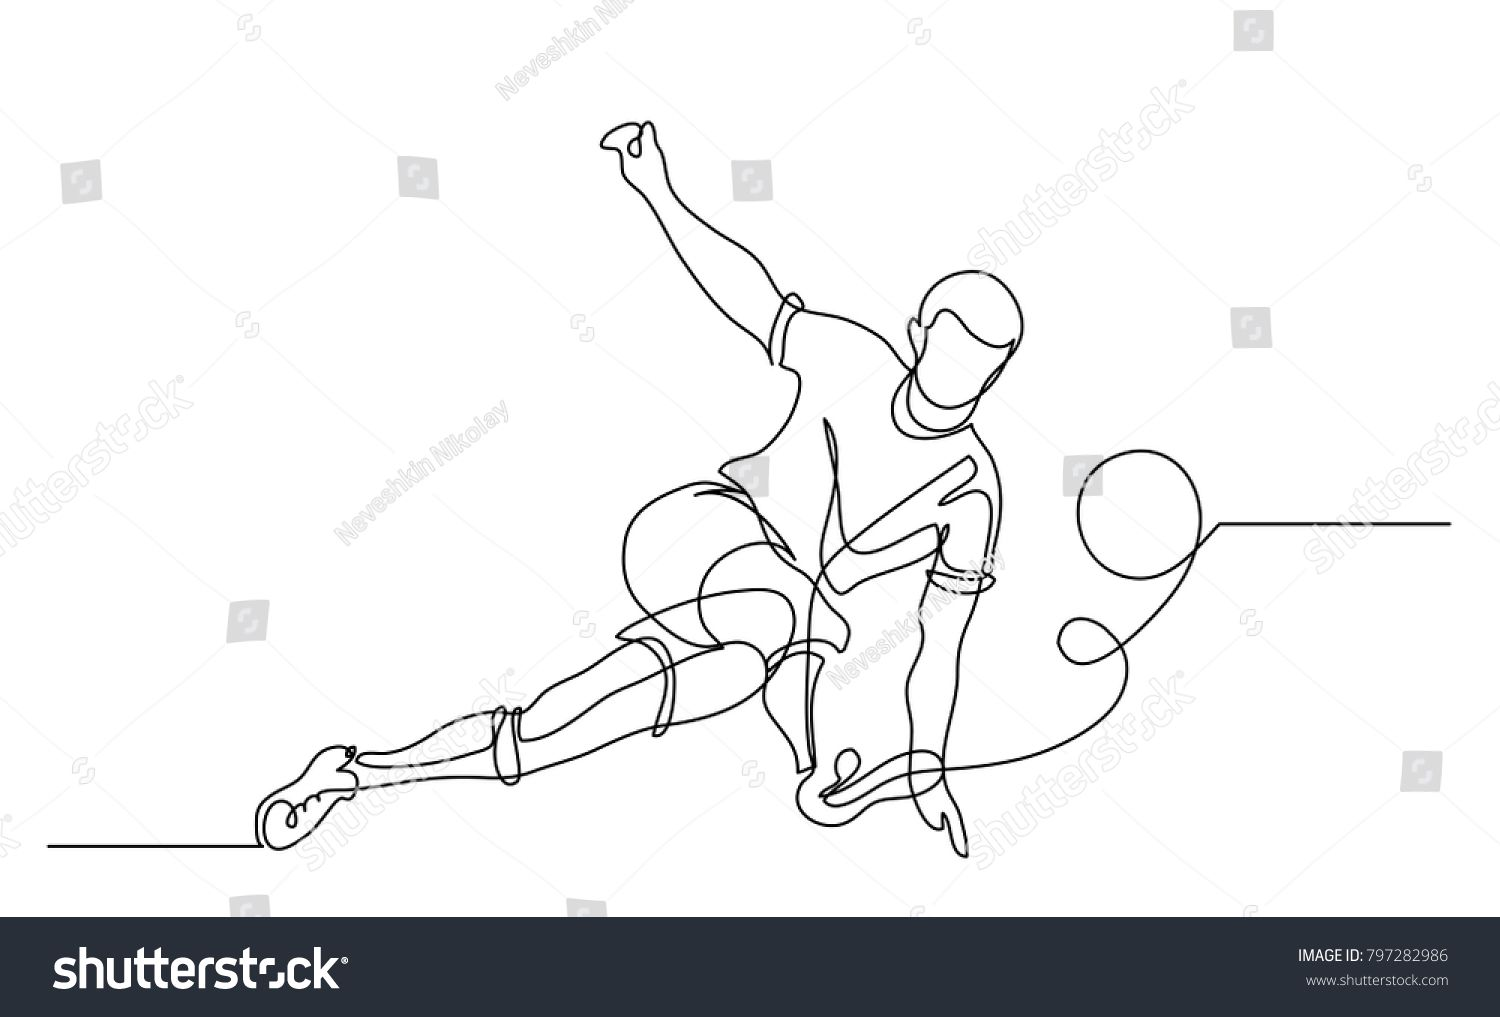 Continuous Line Drawing Illustration Shows A Football Player Kicks The Ball Soccer Vector Illustr Continuous Line Drawing Line Drawing Drawing Illustrations